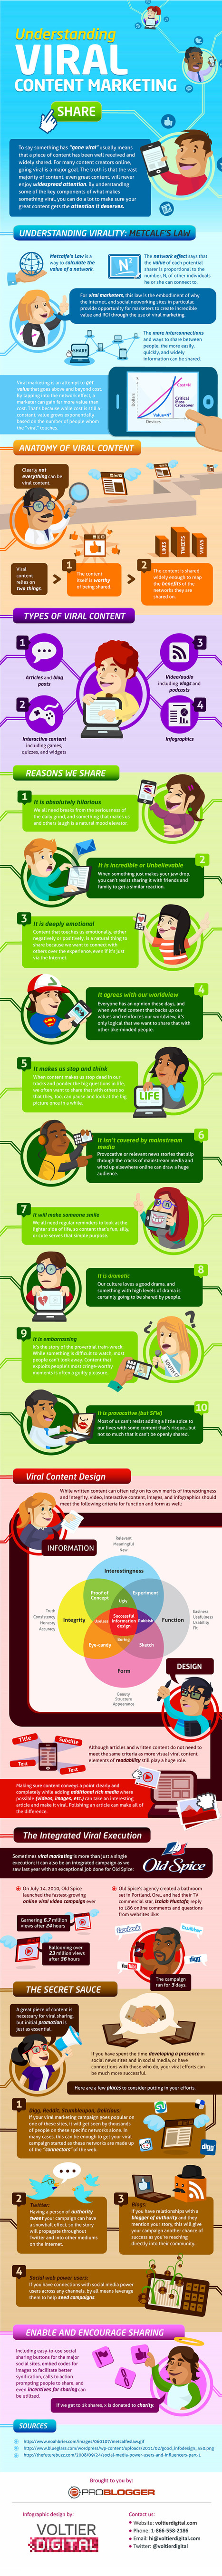 Going Viral Visualized [INFOGRAPHIC] | Psychology of Consumer Behaviour | Scoop.it